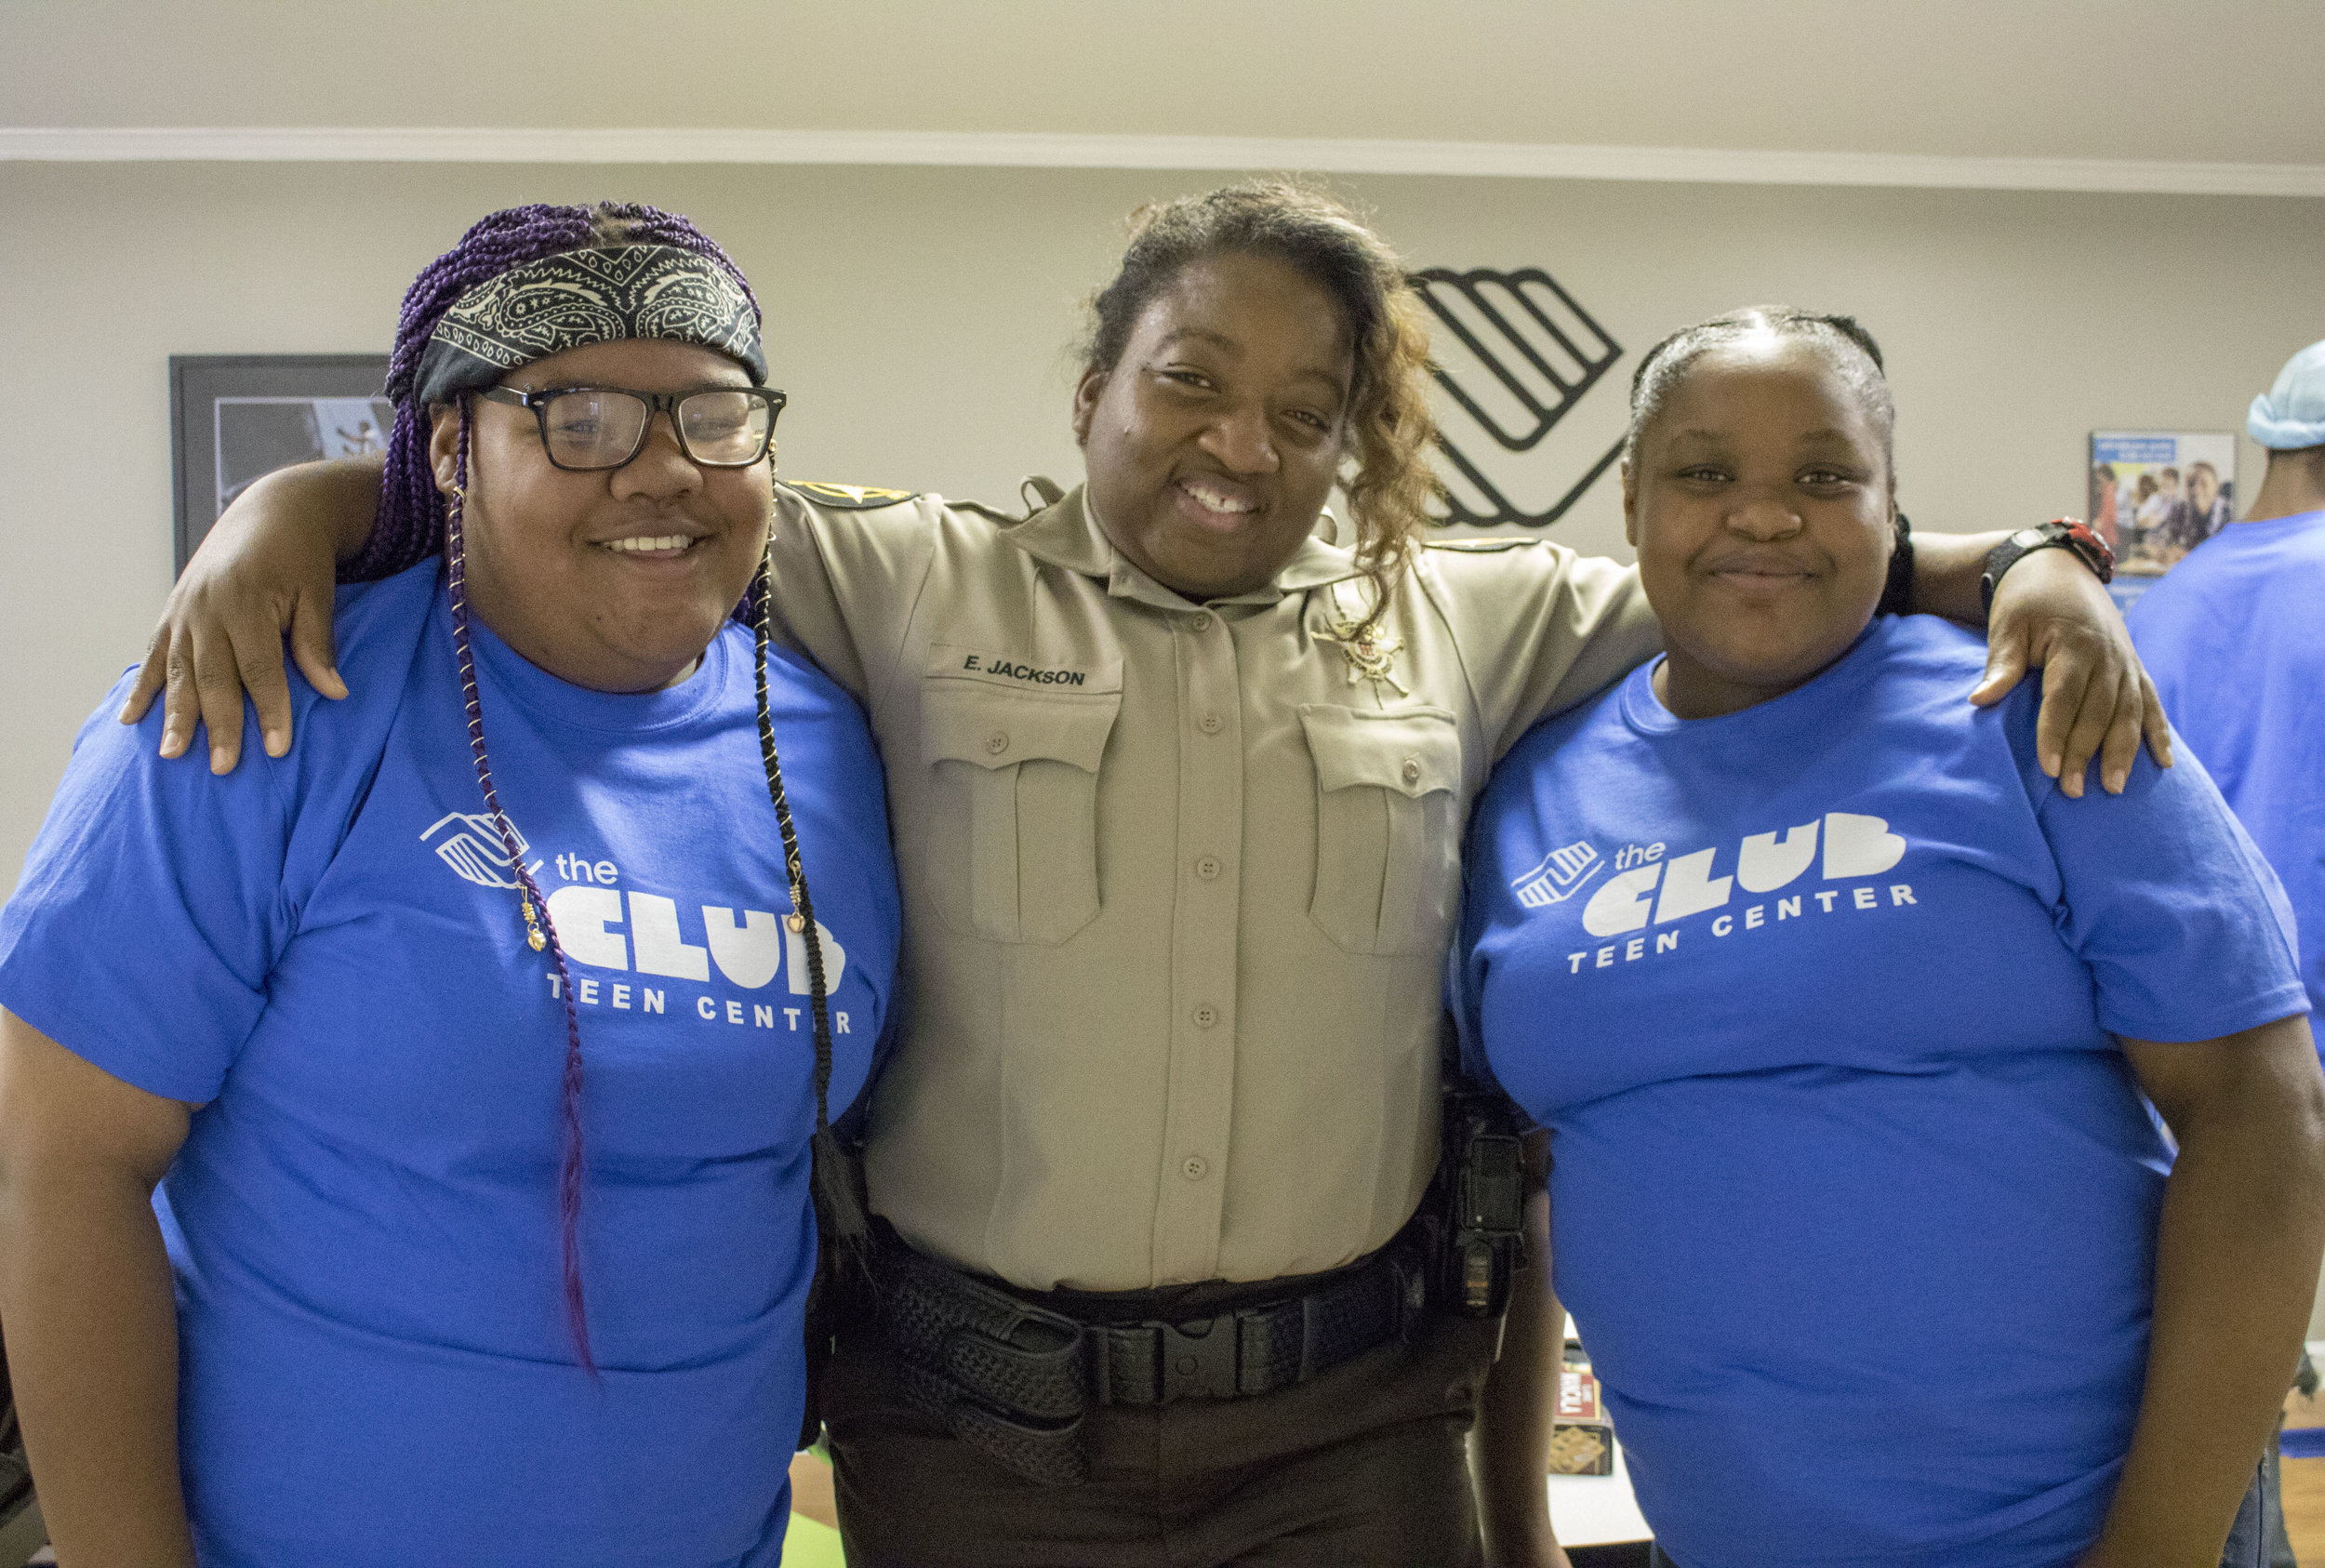 Newton County Sheriff Officers helped transport teens to the Club on our opening day.